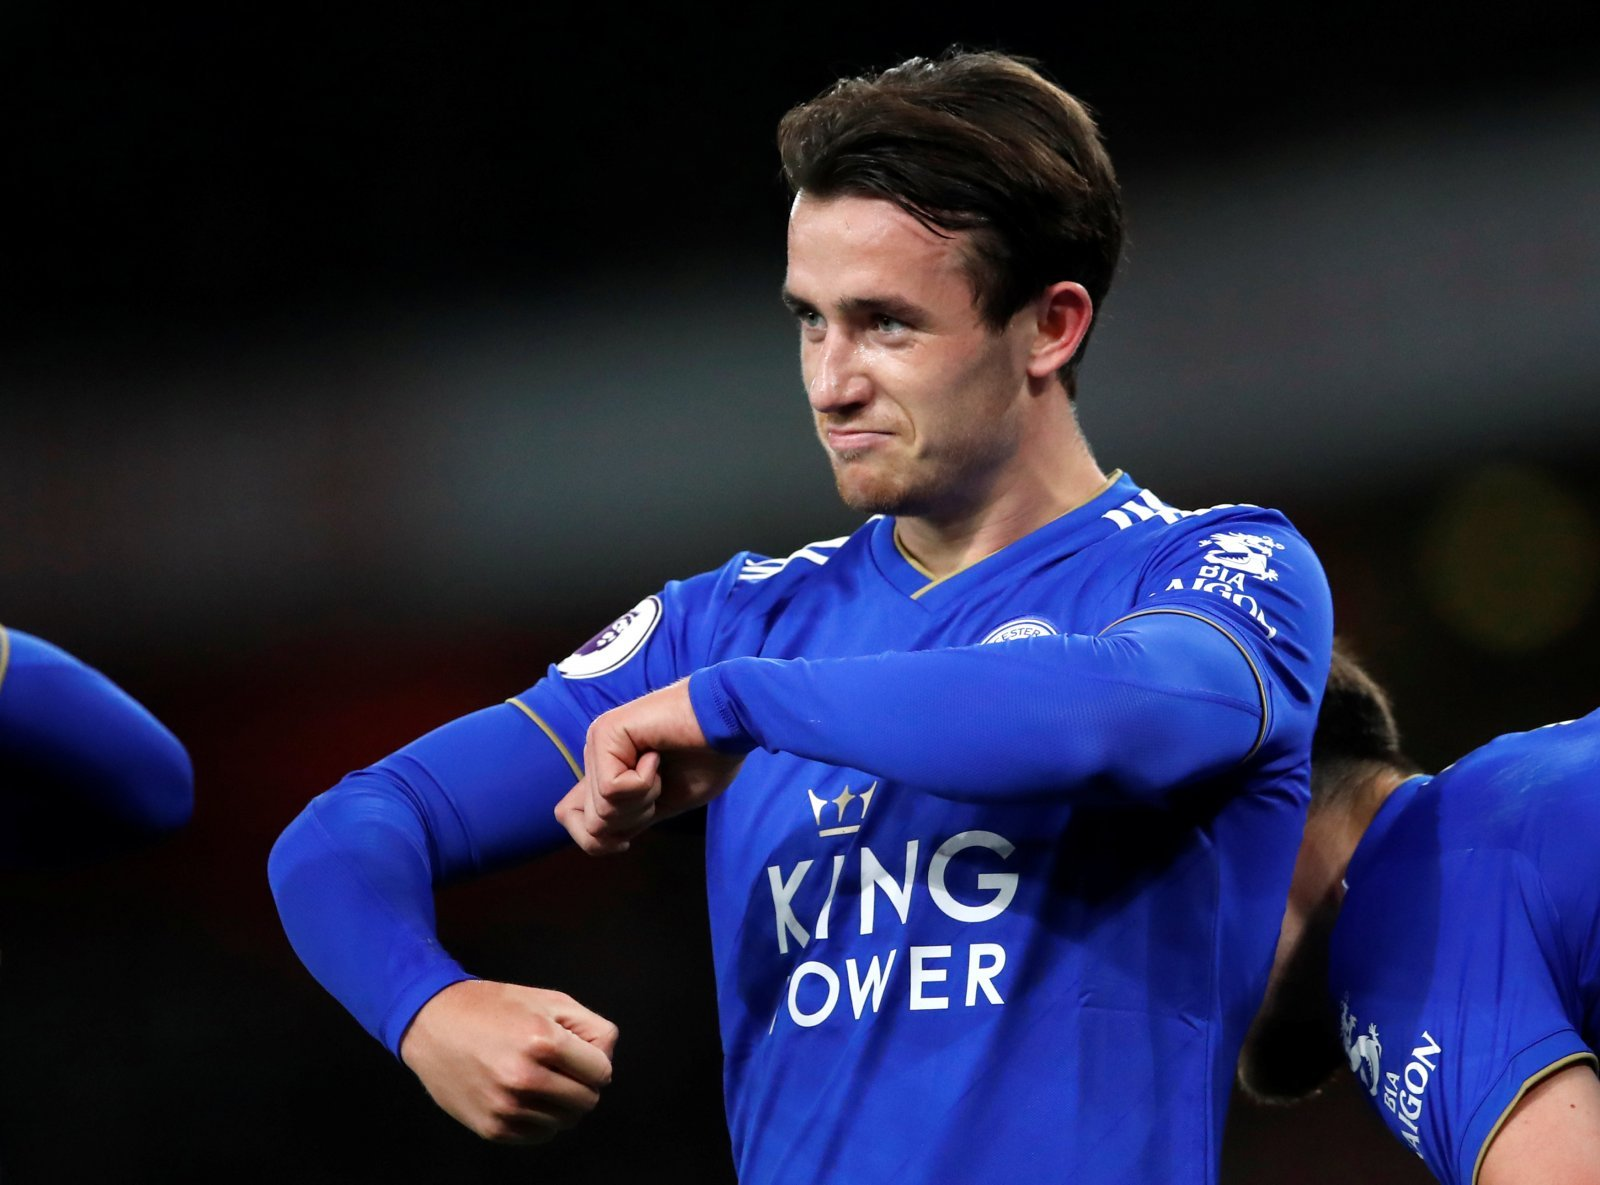 Chelsea Fans Are Going Wild As Ben Chilwell Poses With Ashley Cole On Instagram The Transfer Tavern